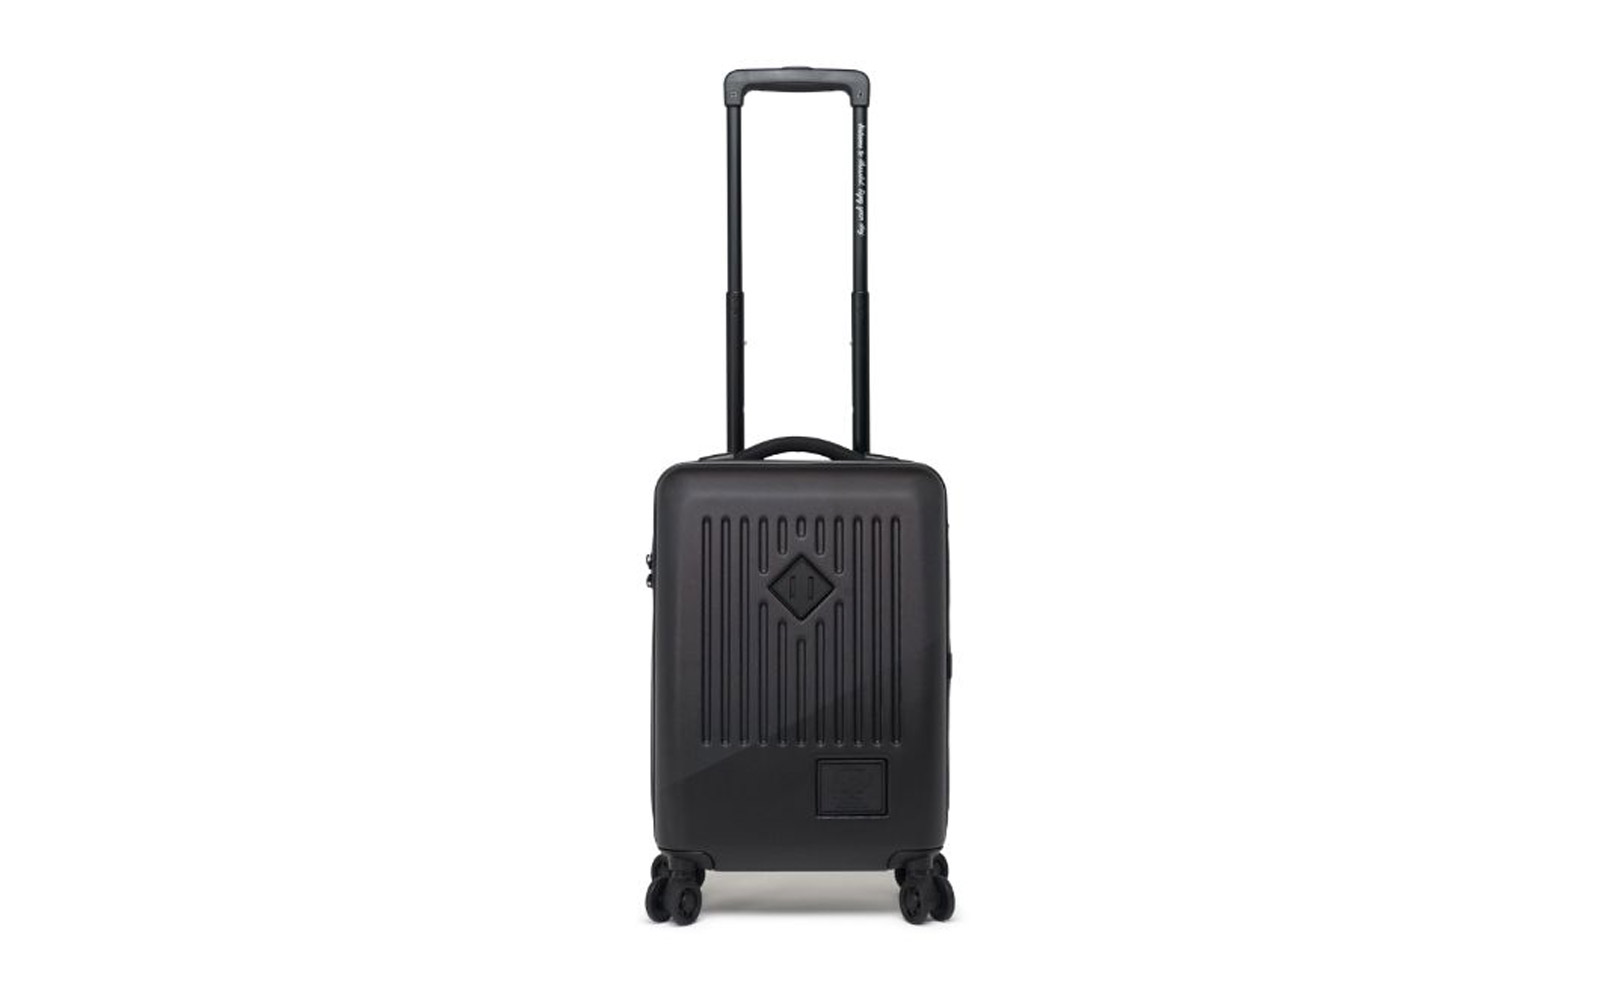 carry-on luggage size united